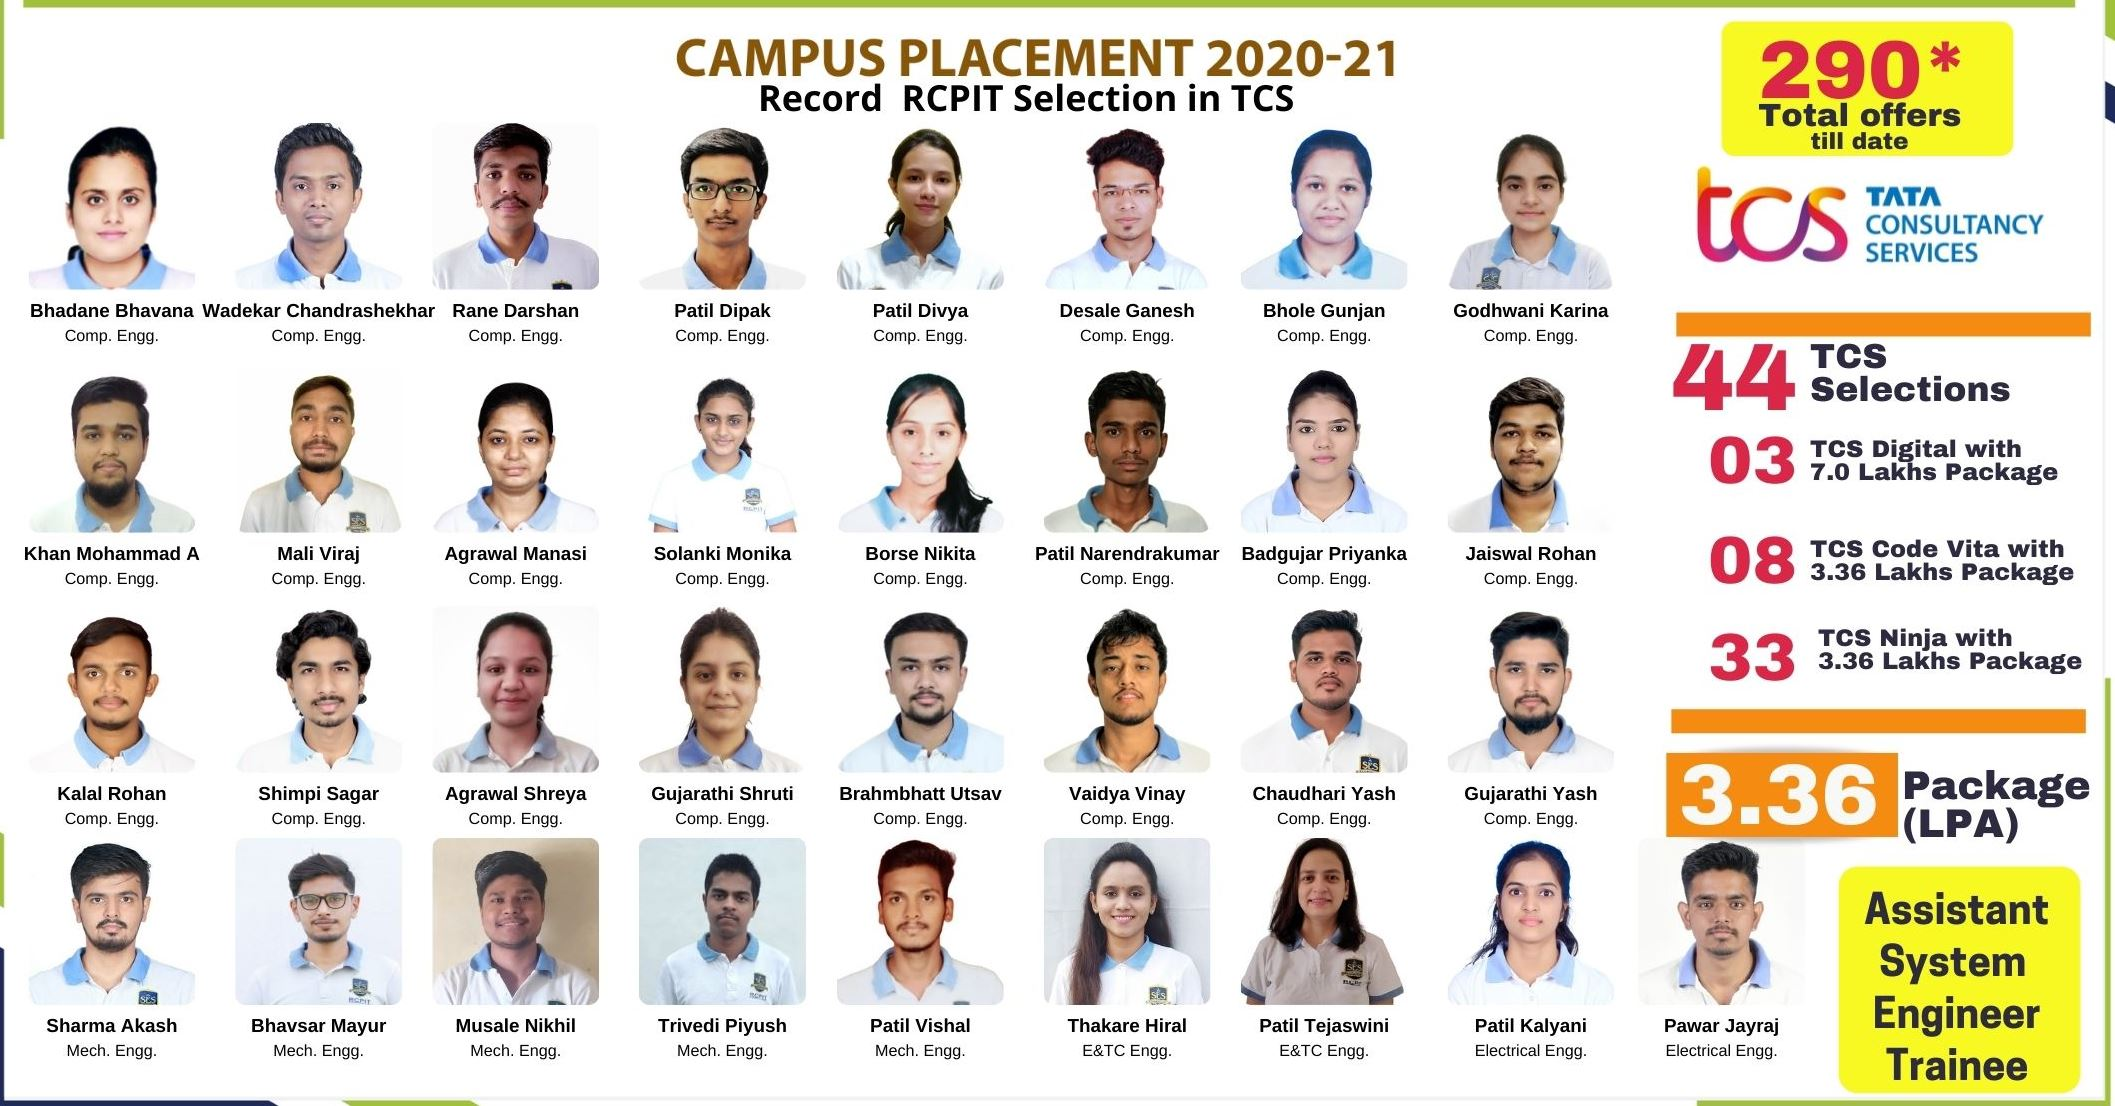 TCS Campus Selection 2020-21